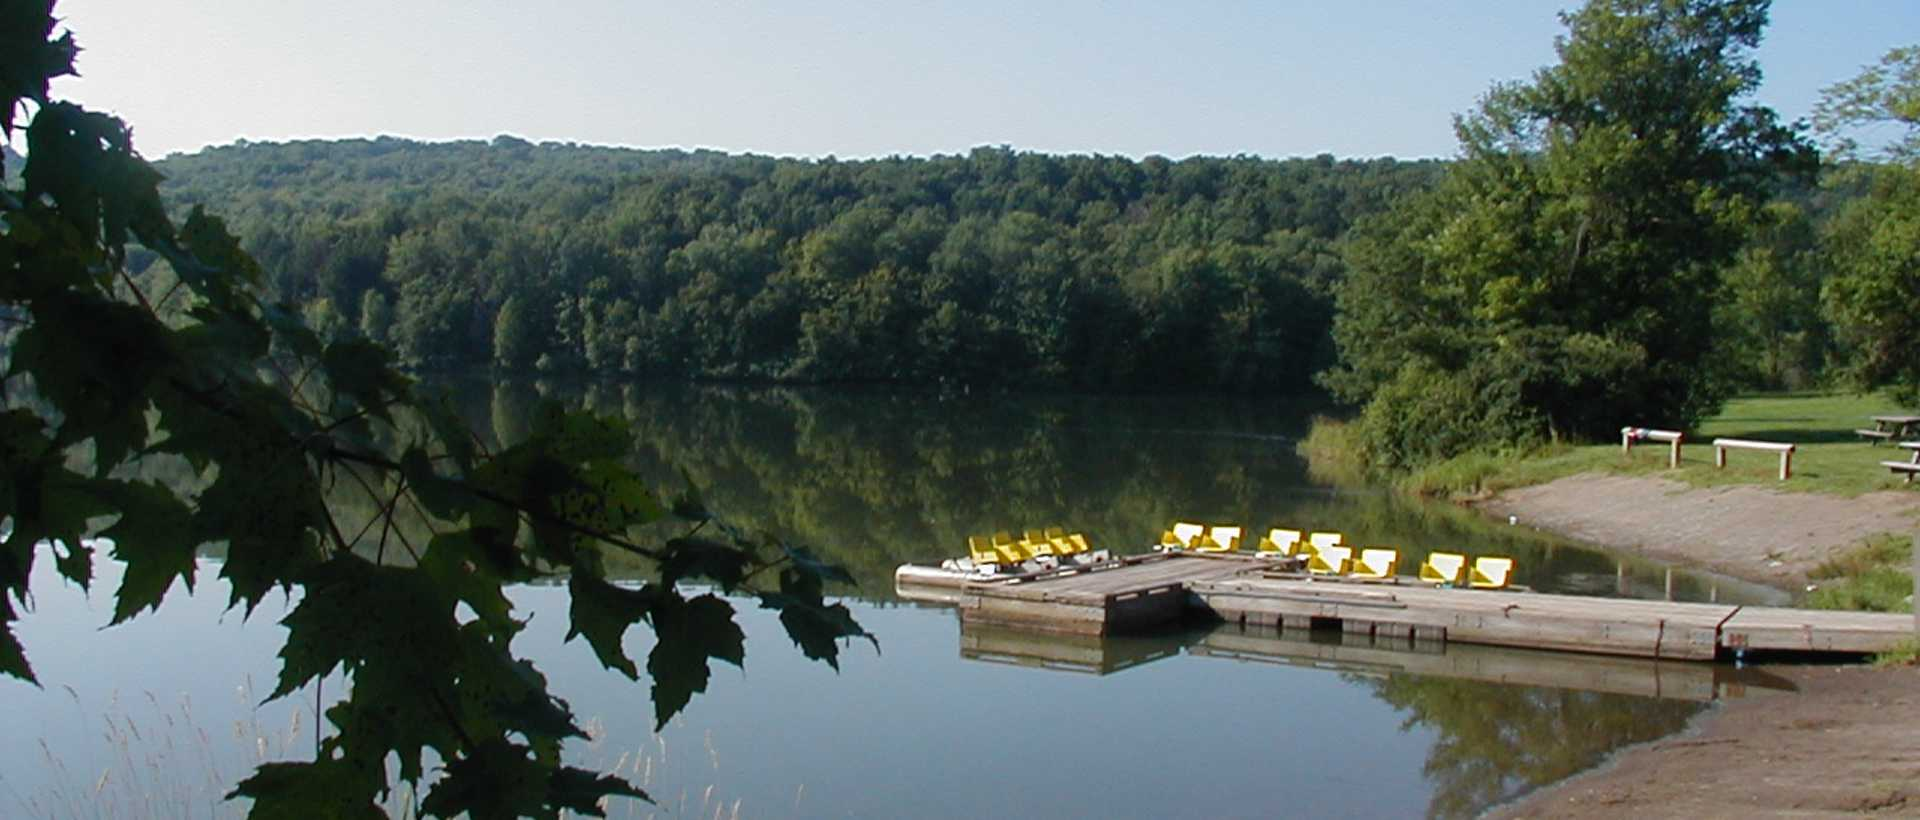 Dock at Lackawanna State Park